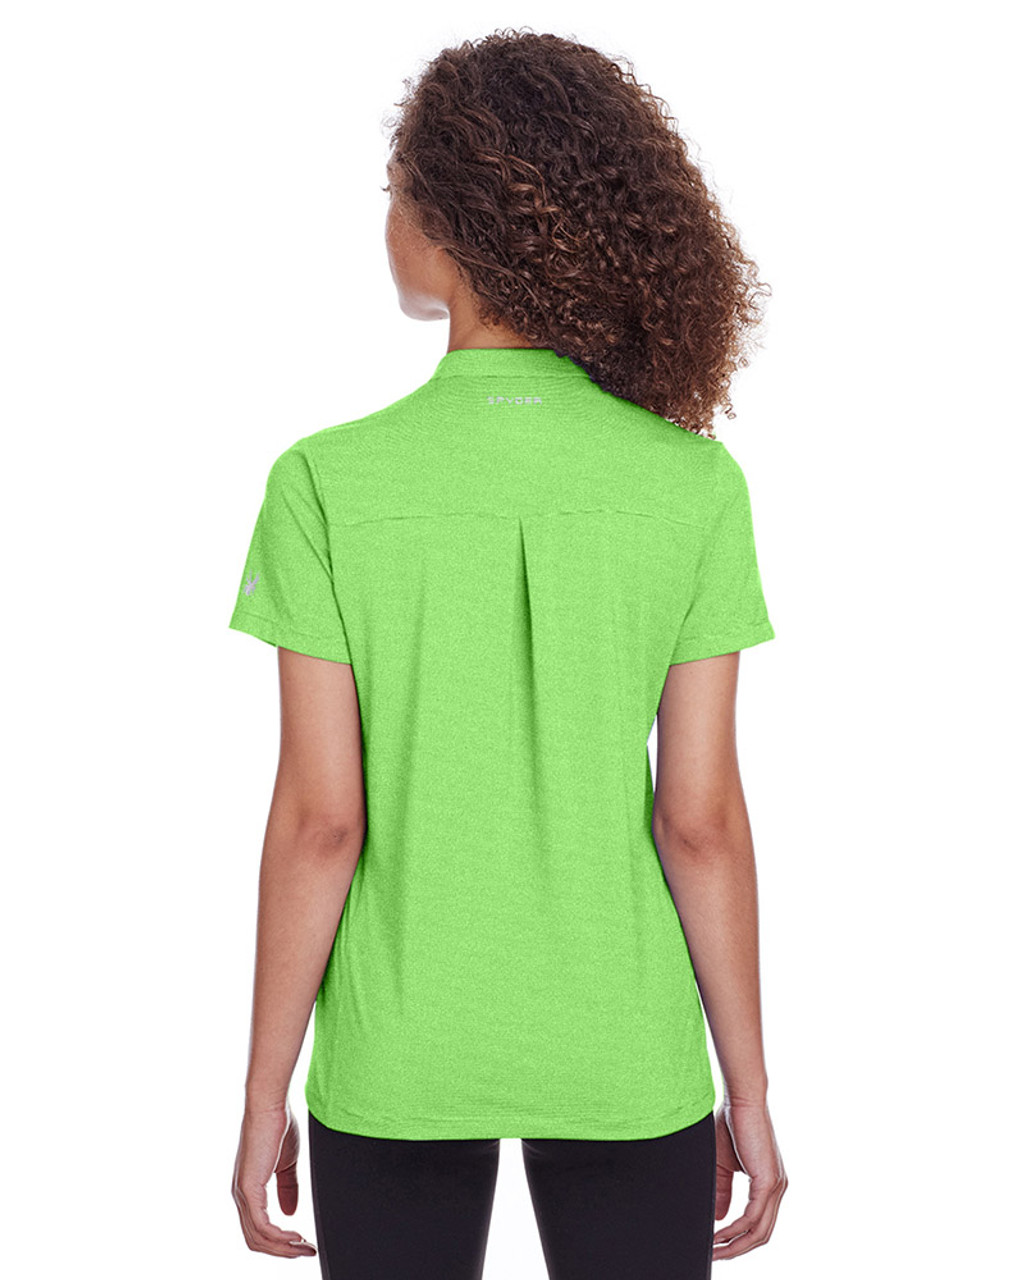 Lime Stripe - back, S16563 Spyder Ladies' Boundary Polo | Blankclothing.ca